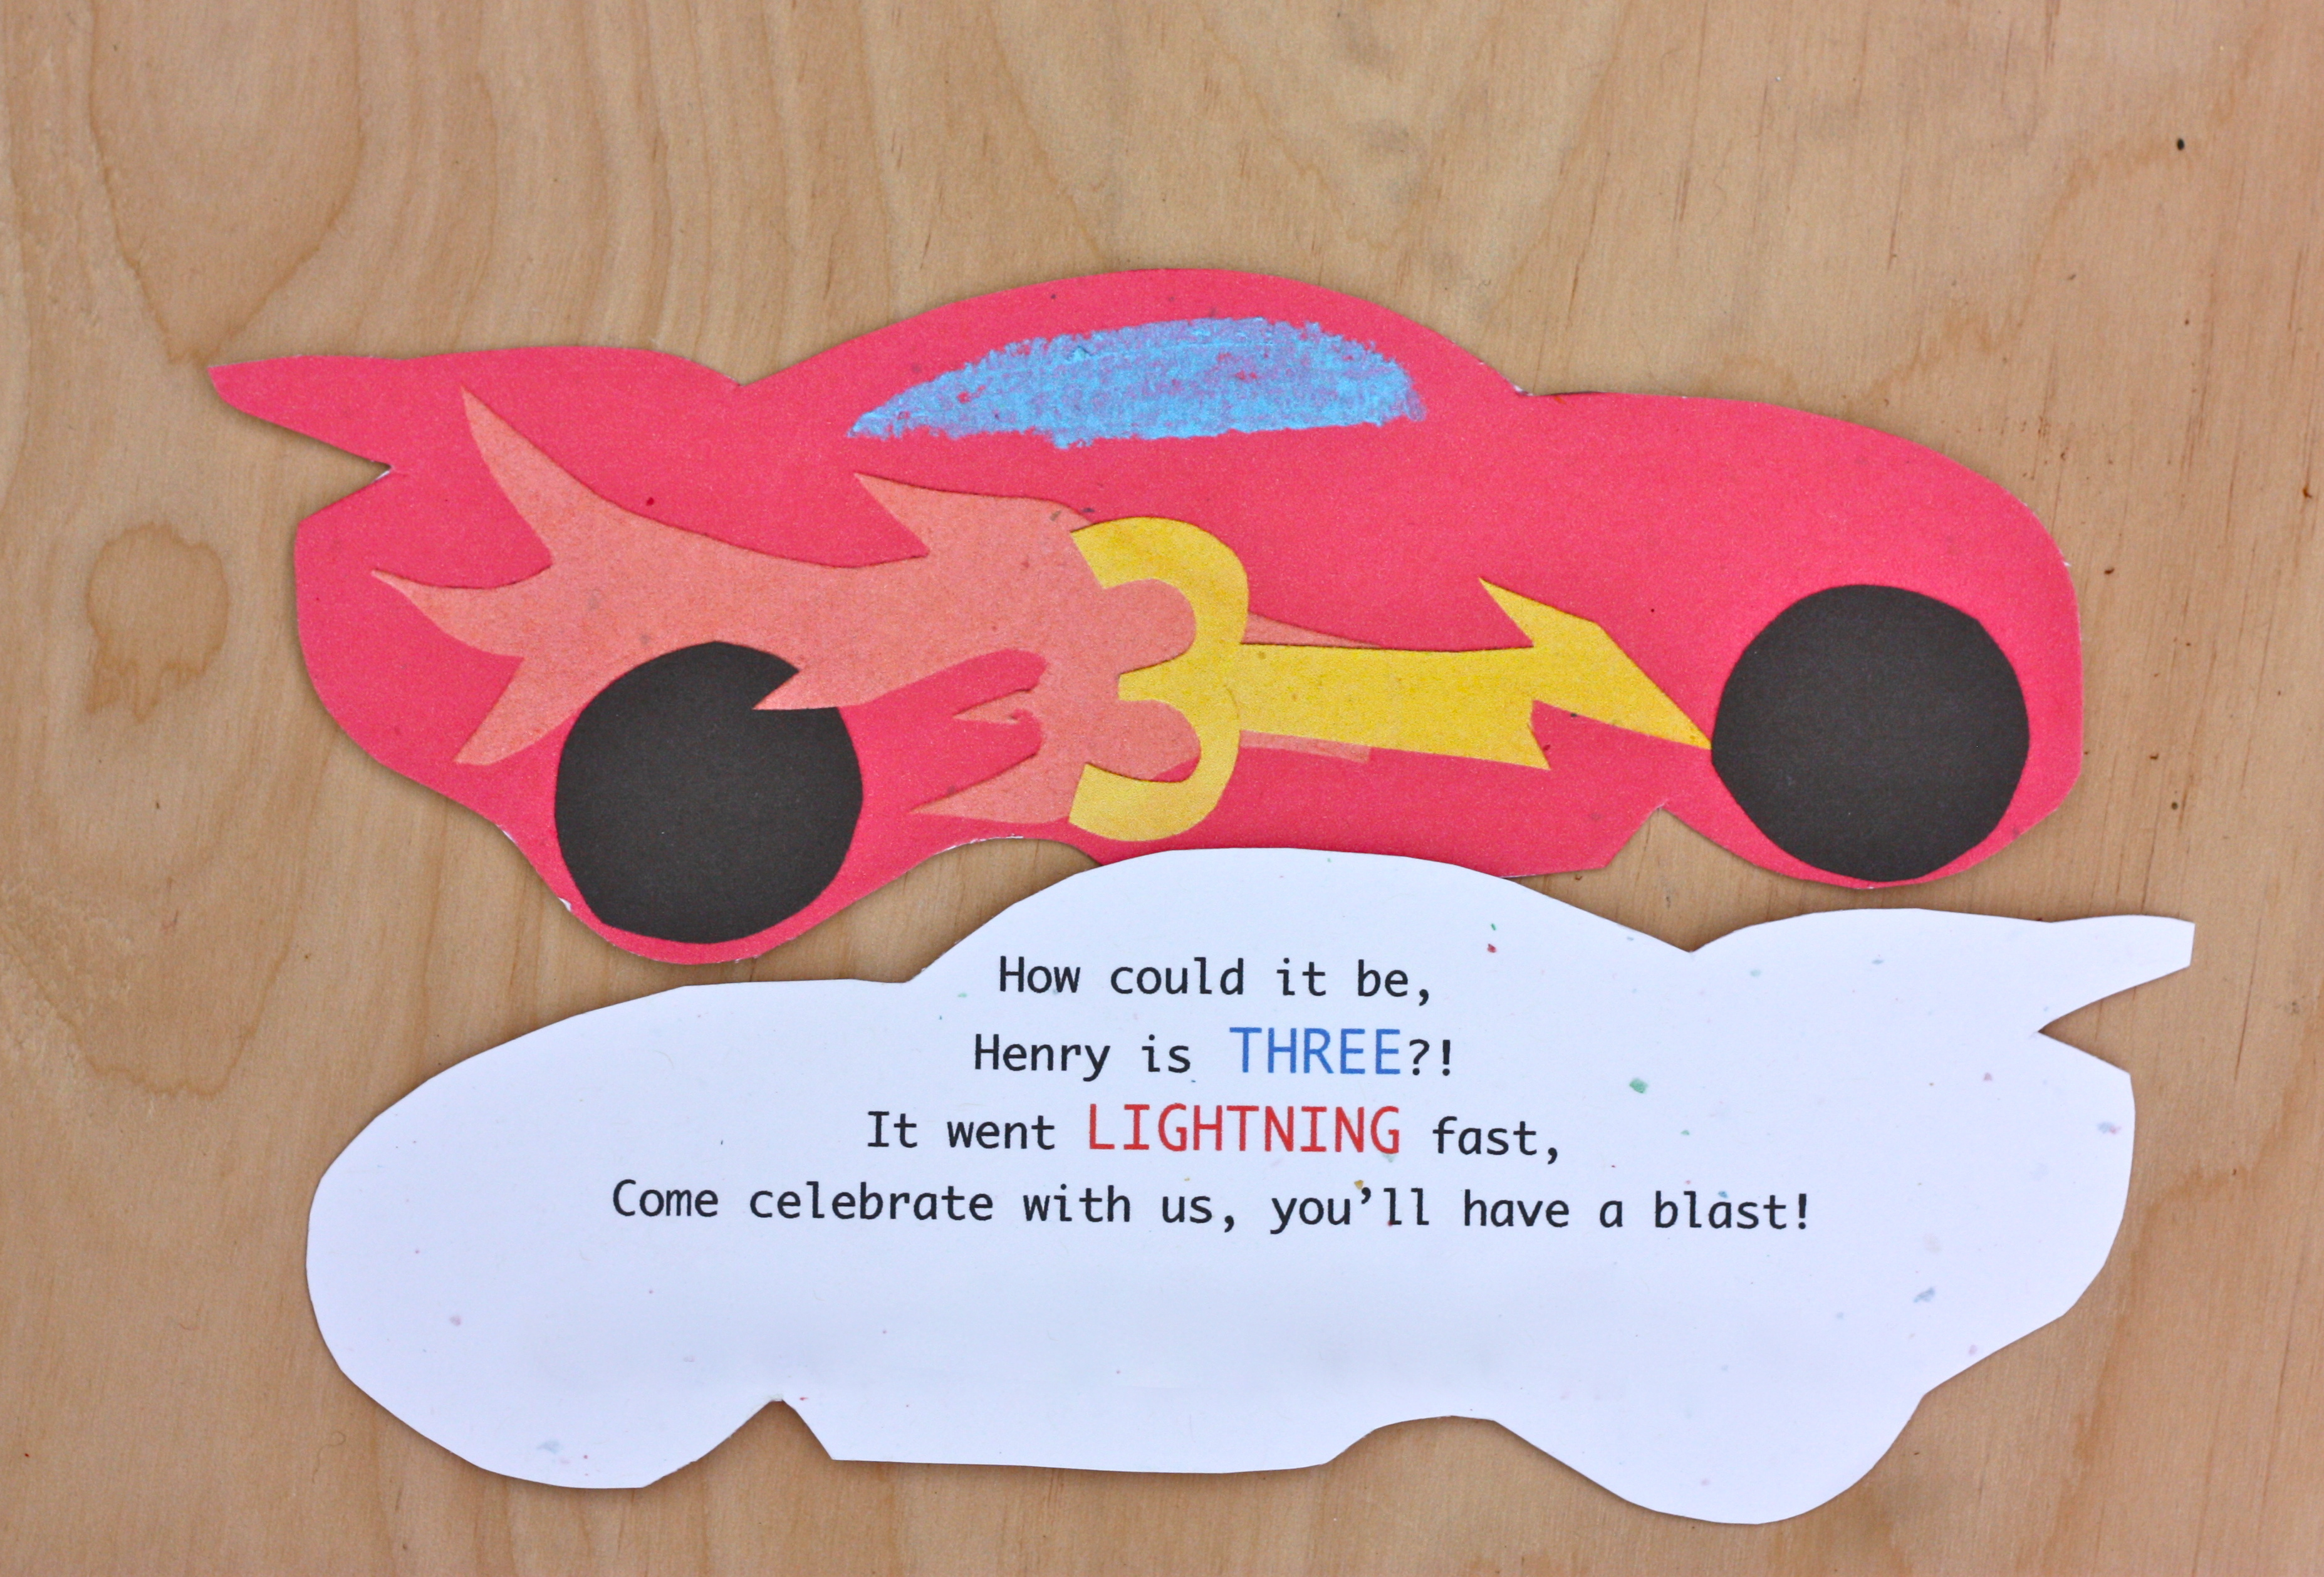 a lightning mcqueen ish party buzzmills i made the invitation by cutting out scraps of paper to make a collage car and then photo copied it to make many